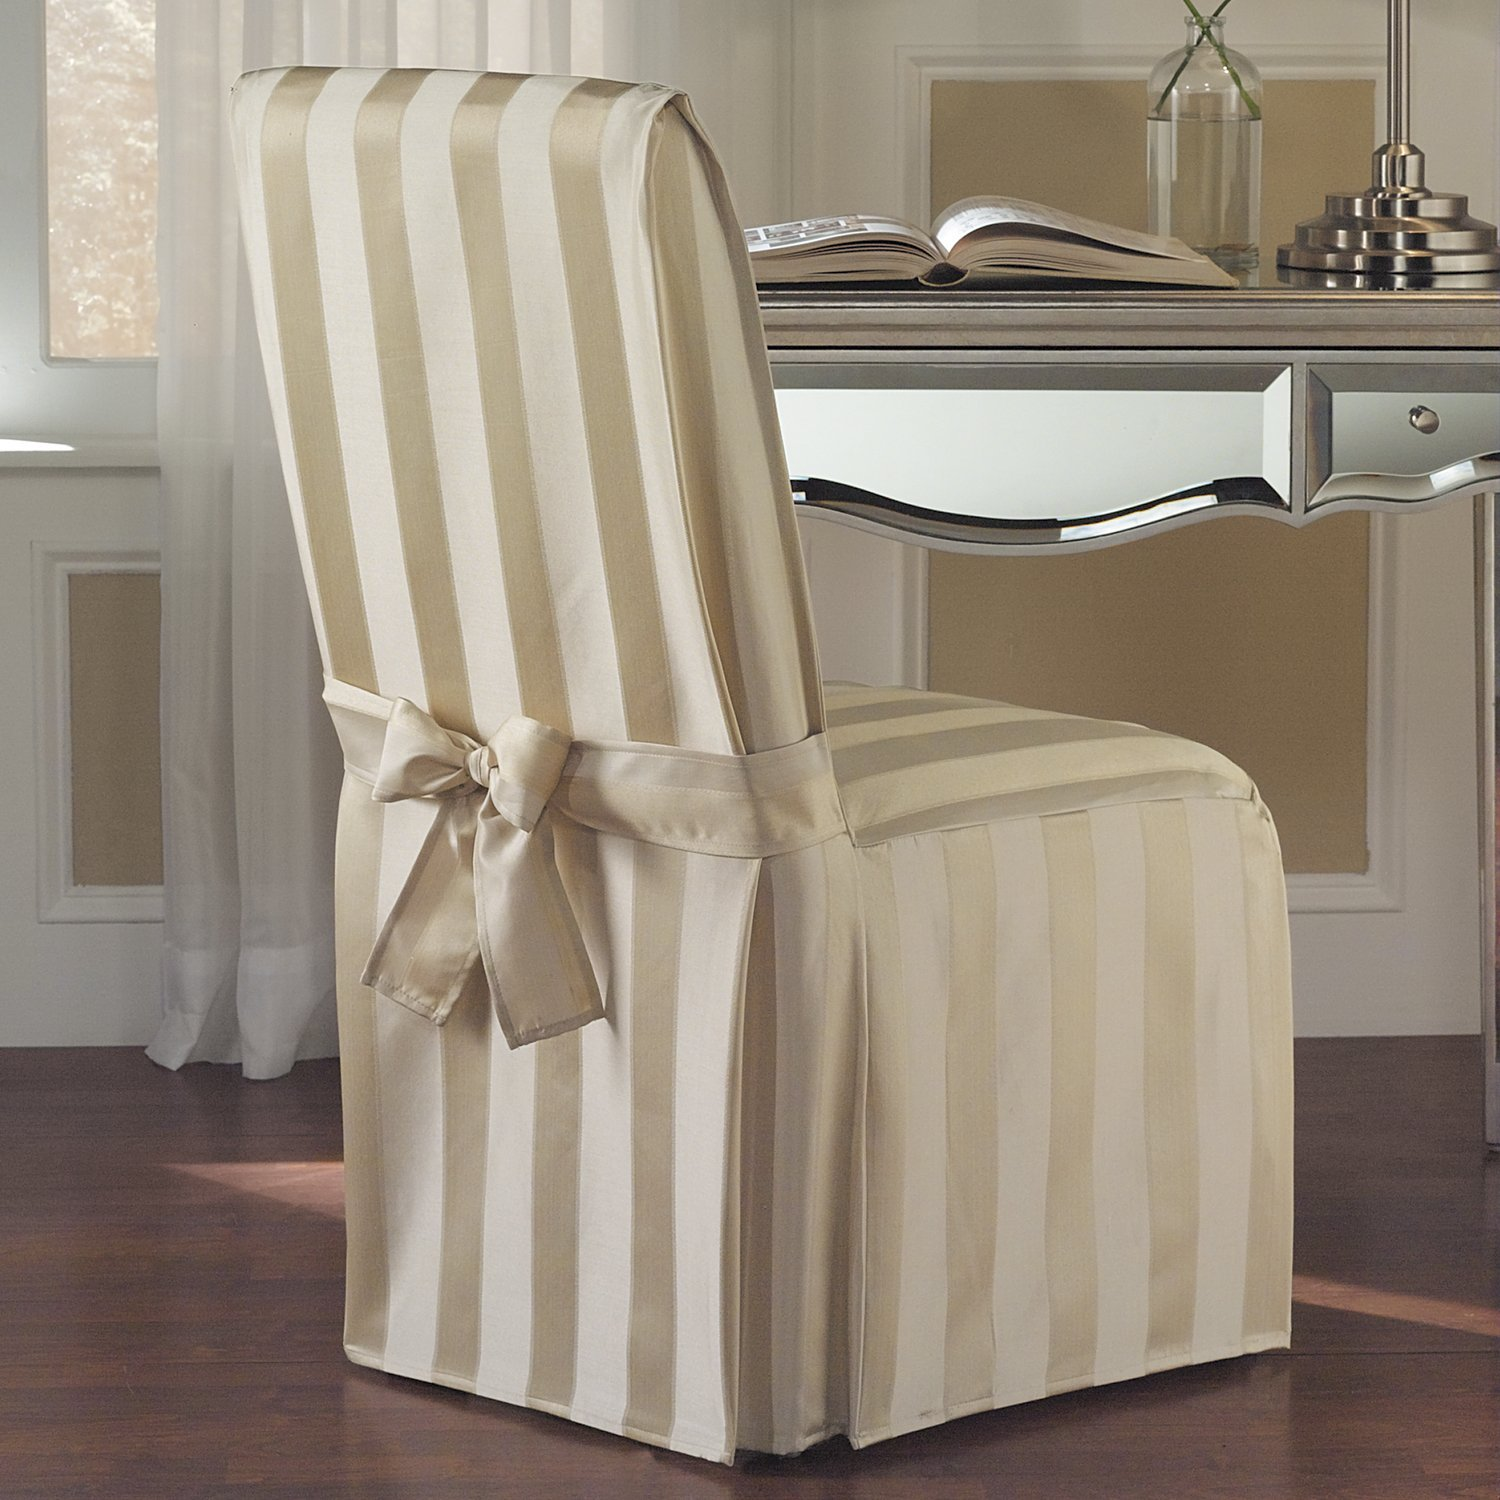 Top 10 best dining room chair covers for sale in 2015 review for Dining room chair covers